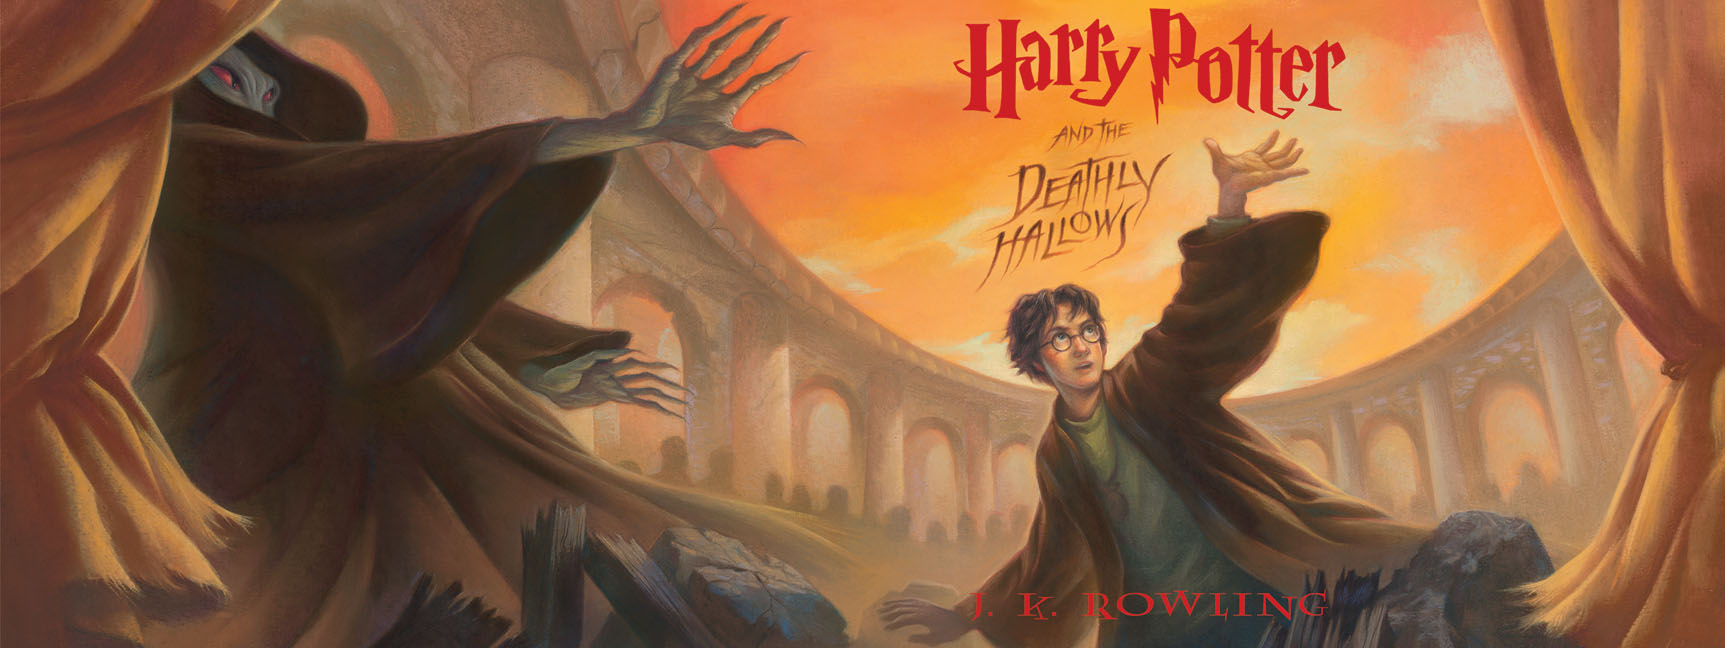 Post-Harry Potter Blues? 11 Book Series to Check Out